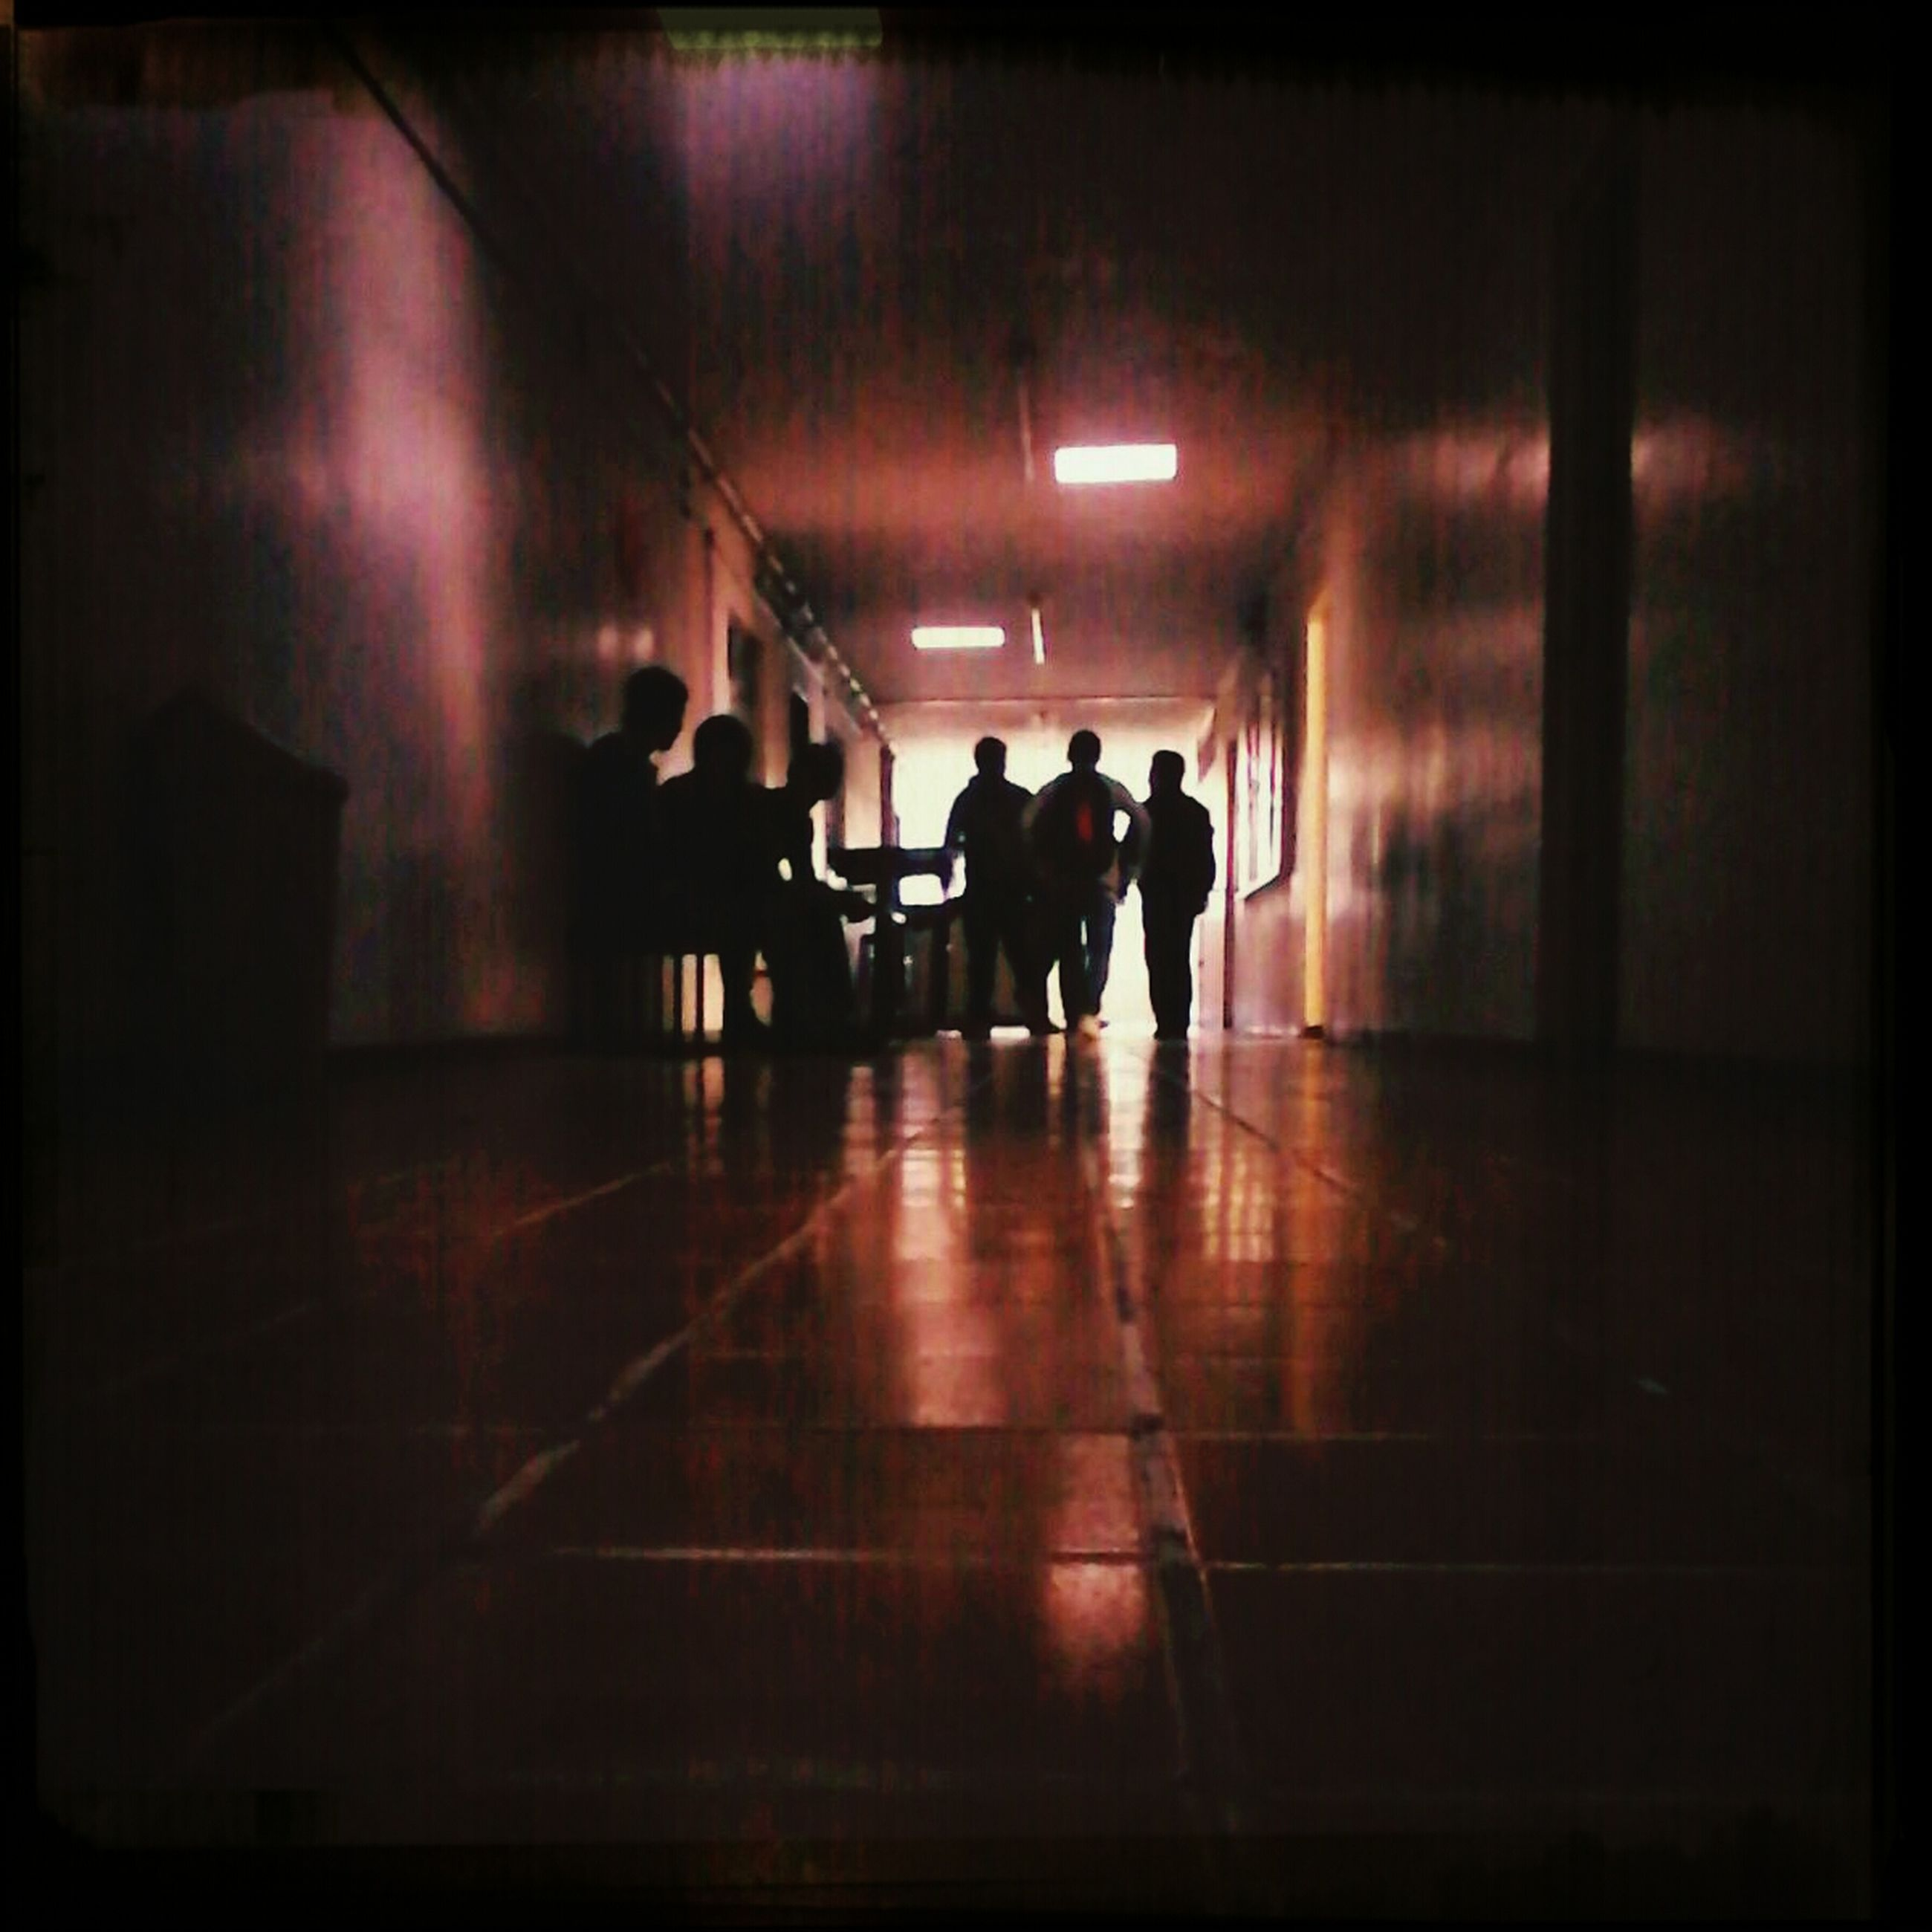 indoors, men, illuminated, walking, lifestyles, full length, silhouette, tunnel, person, rear view, leisure activity, subway, corridor, the way forward, lighting equipment, night, built structure